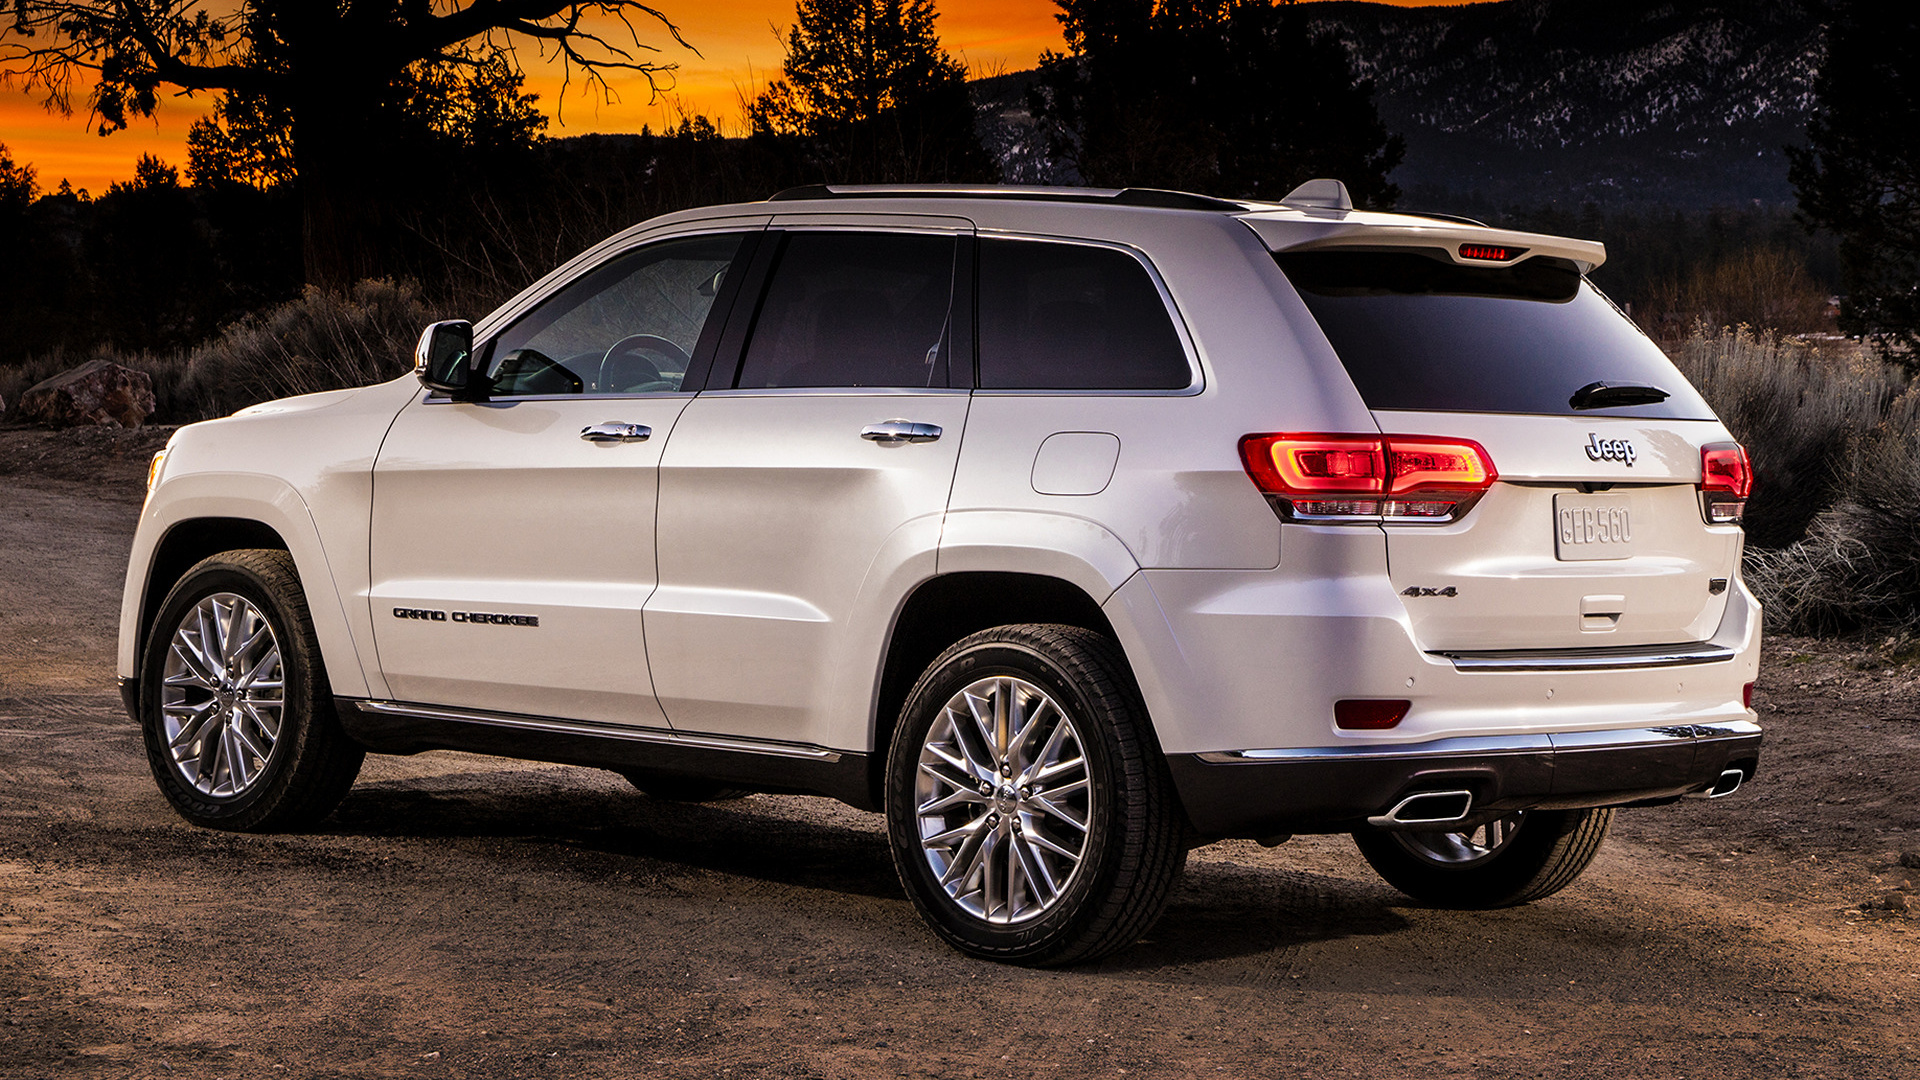 Lincoln Wallpaper Car Jeep Grand Cherokee Summit 2017 Wallpapers And Hd Images